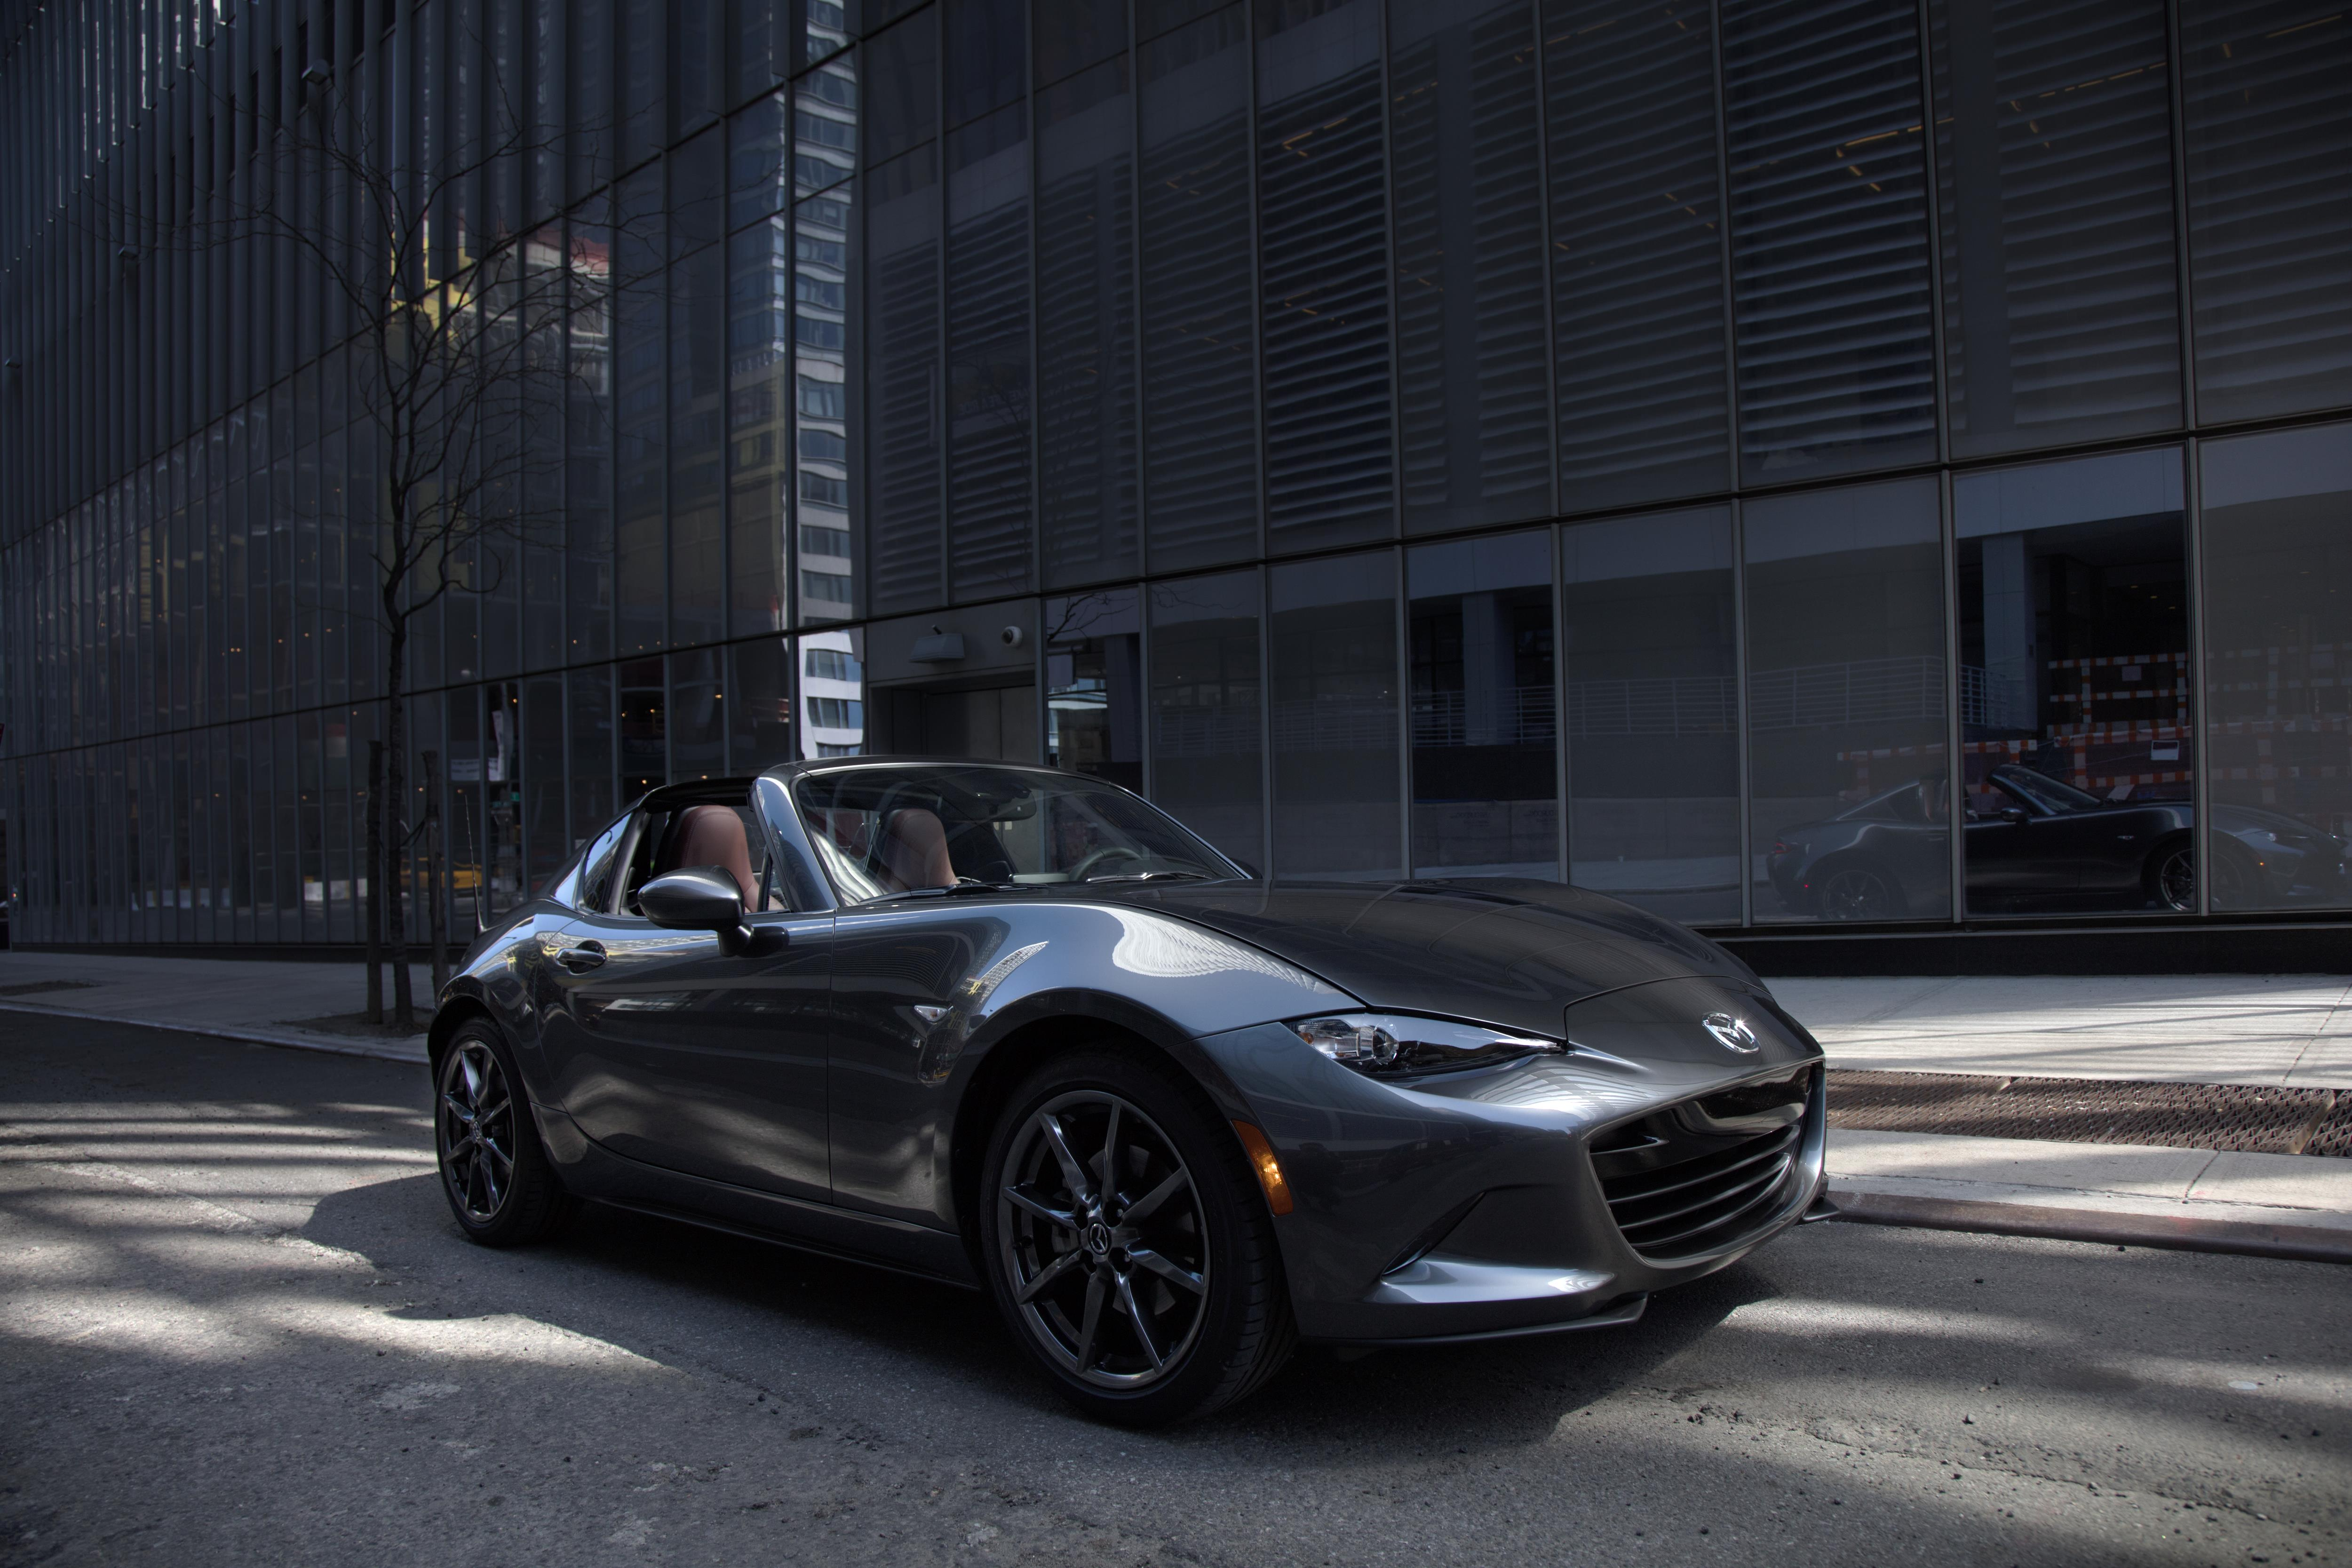 2017 mazda mx 5 rf hd cars 4k wallpapers images backgrounds photos and pictures. Black Bedroom Furniture Sets. Home Design Ideas